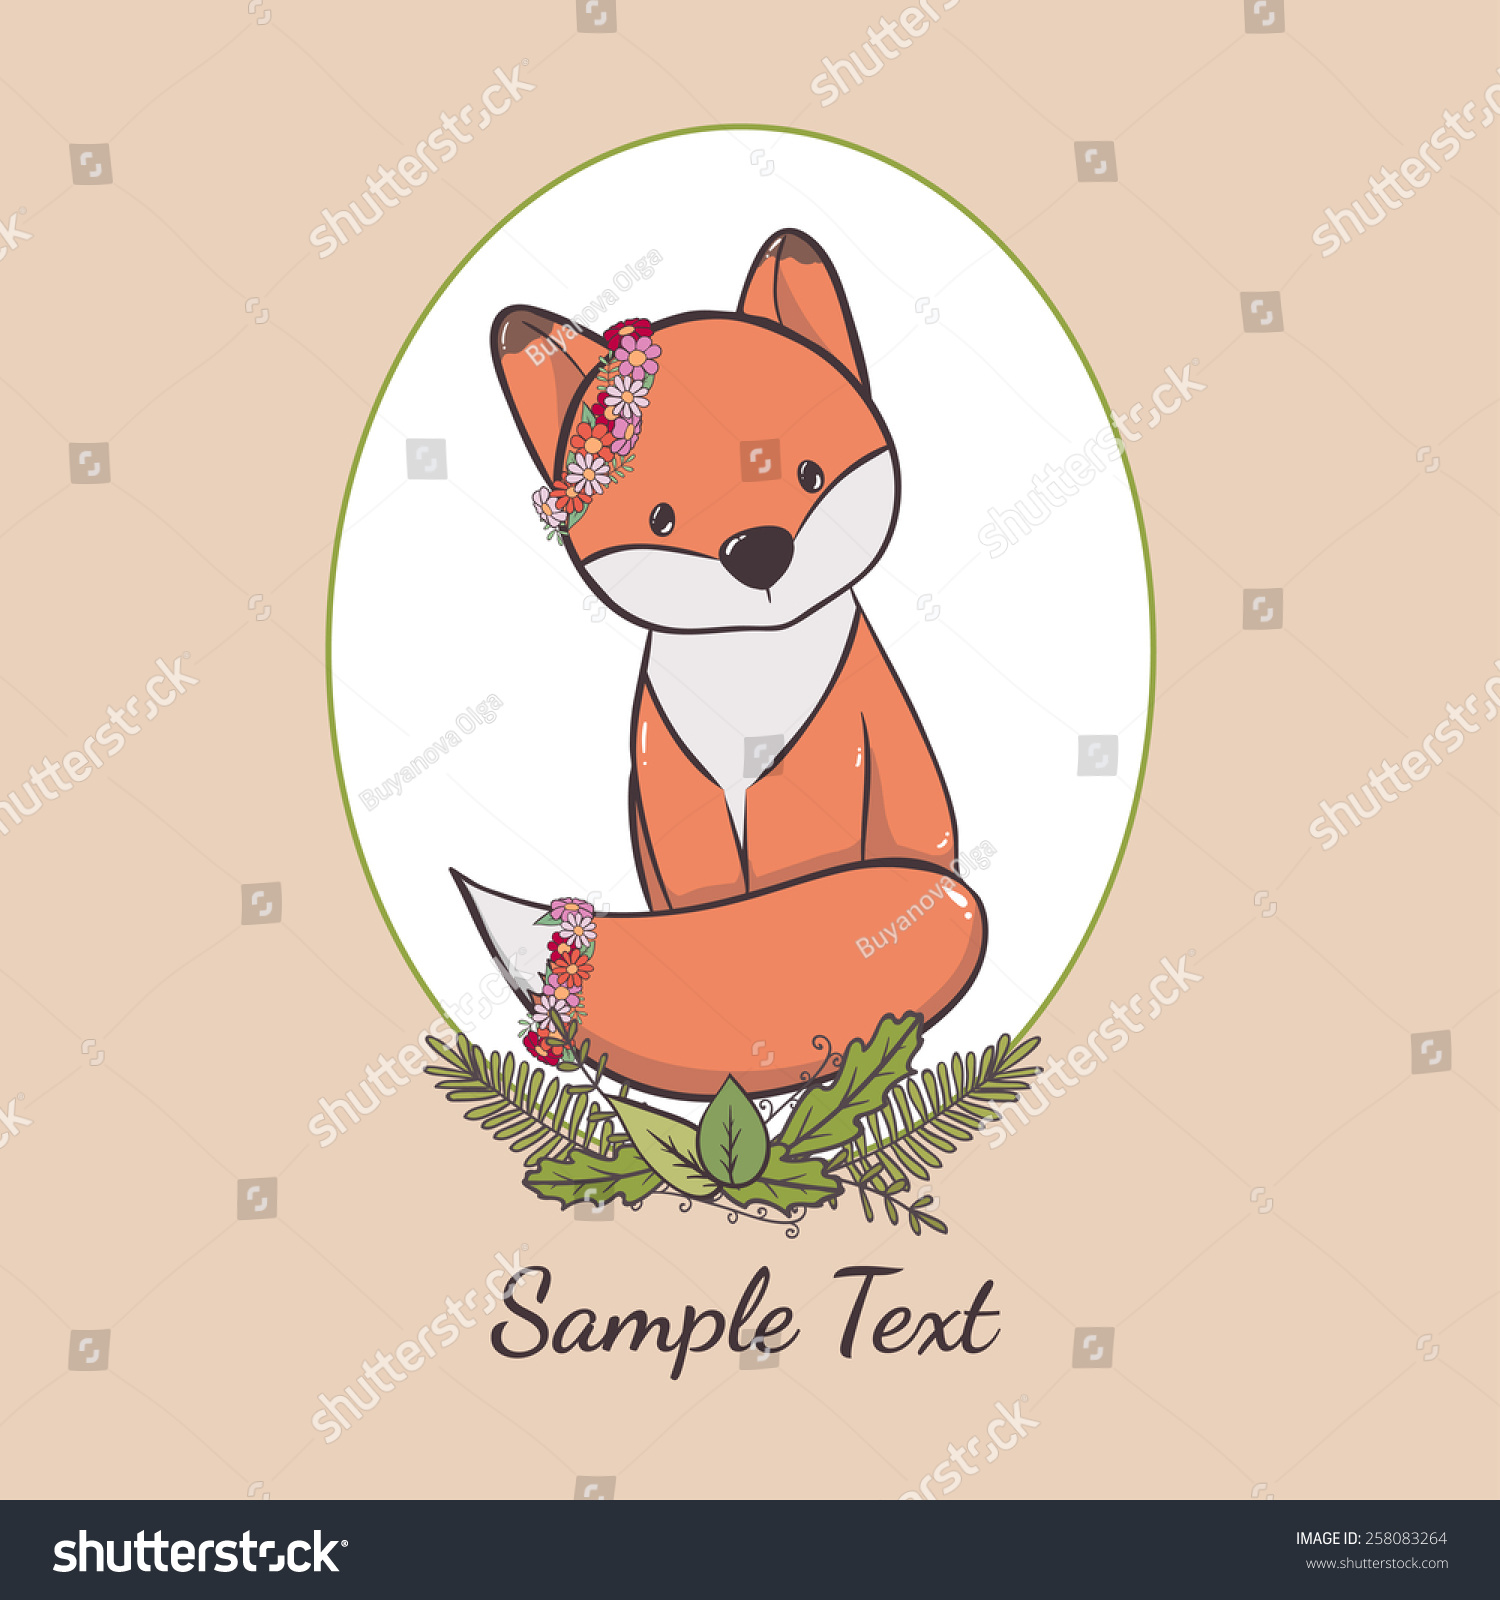 Cute Cartoon Fox Can Be Used Stock Vector Shutterstock